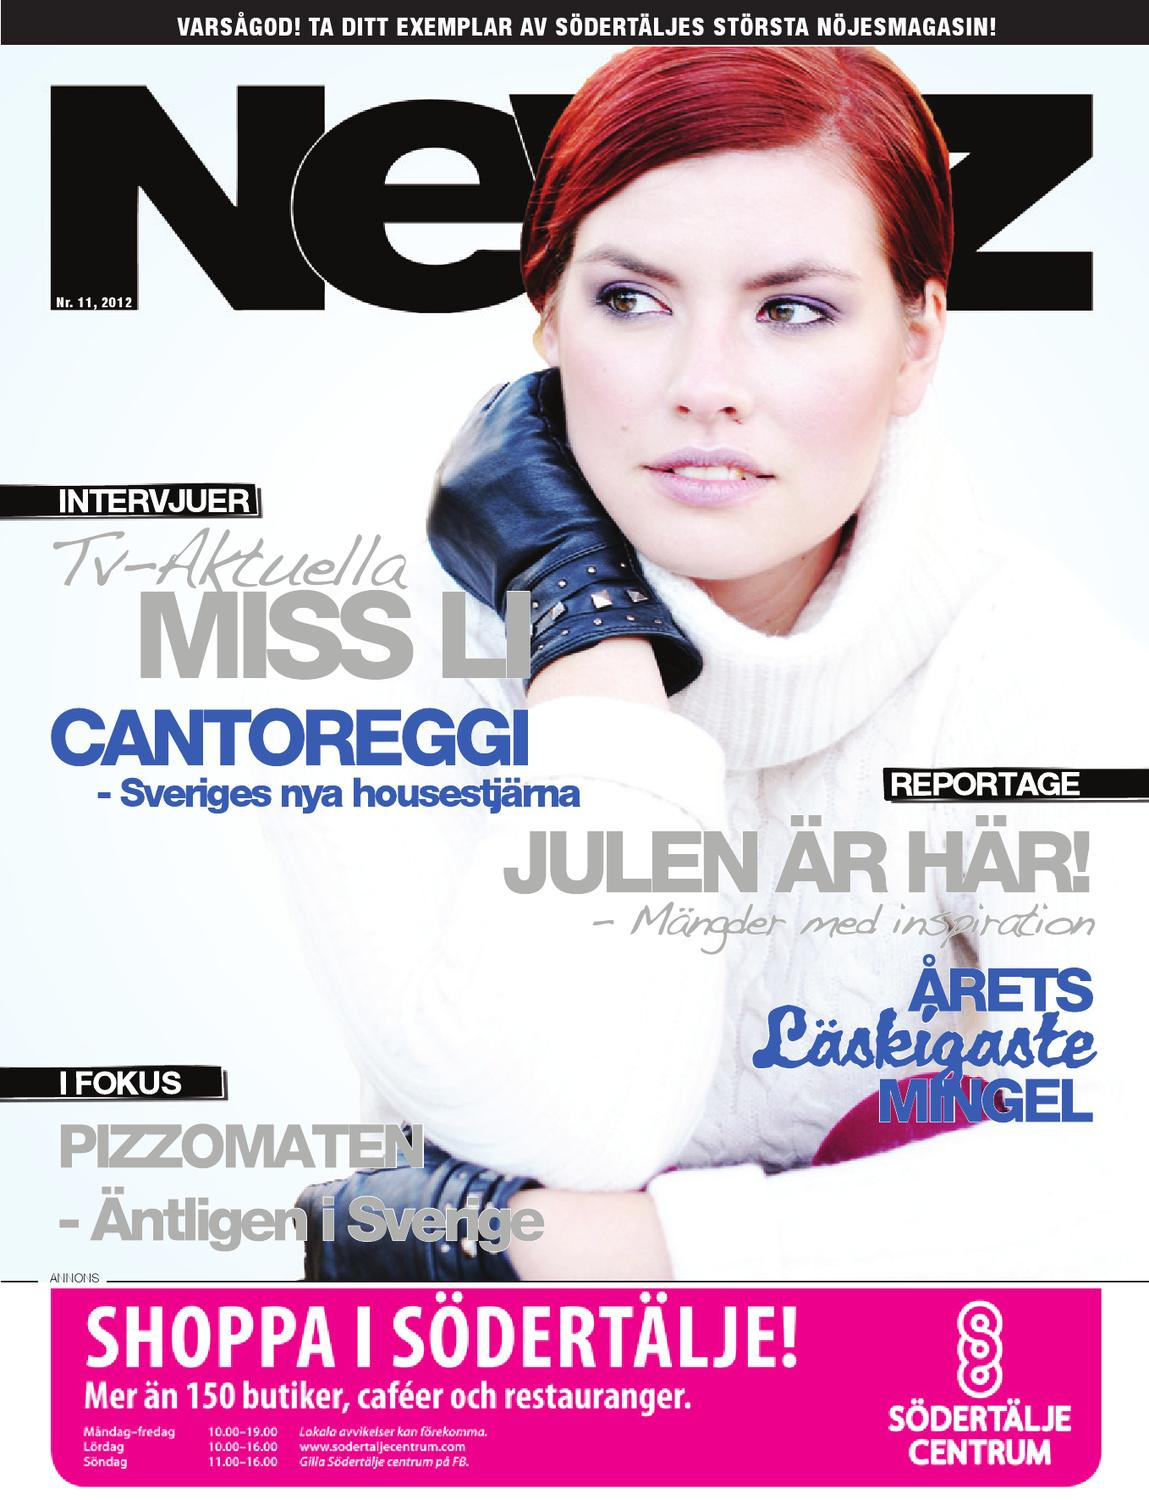 d39dbb7b52b9 Newz #11 2012 by NeWZ - issuu